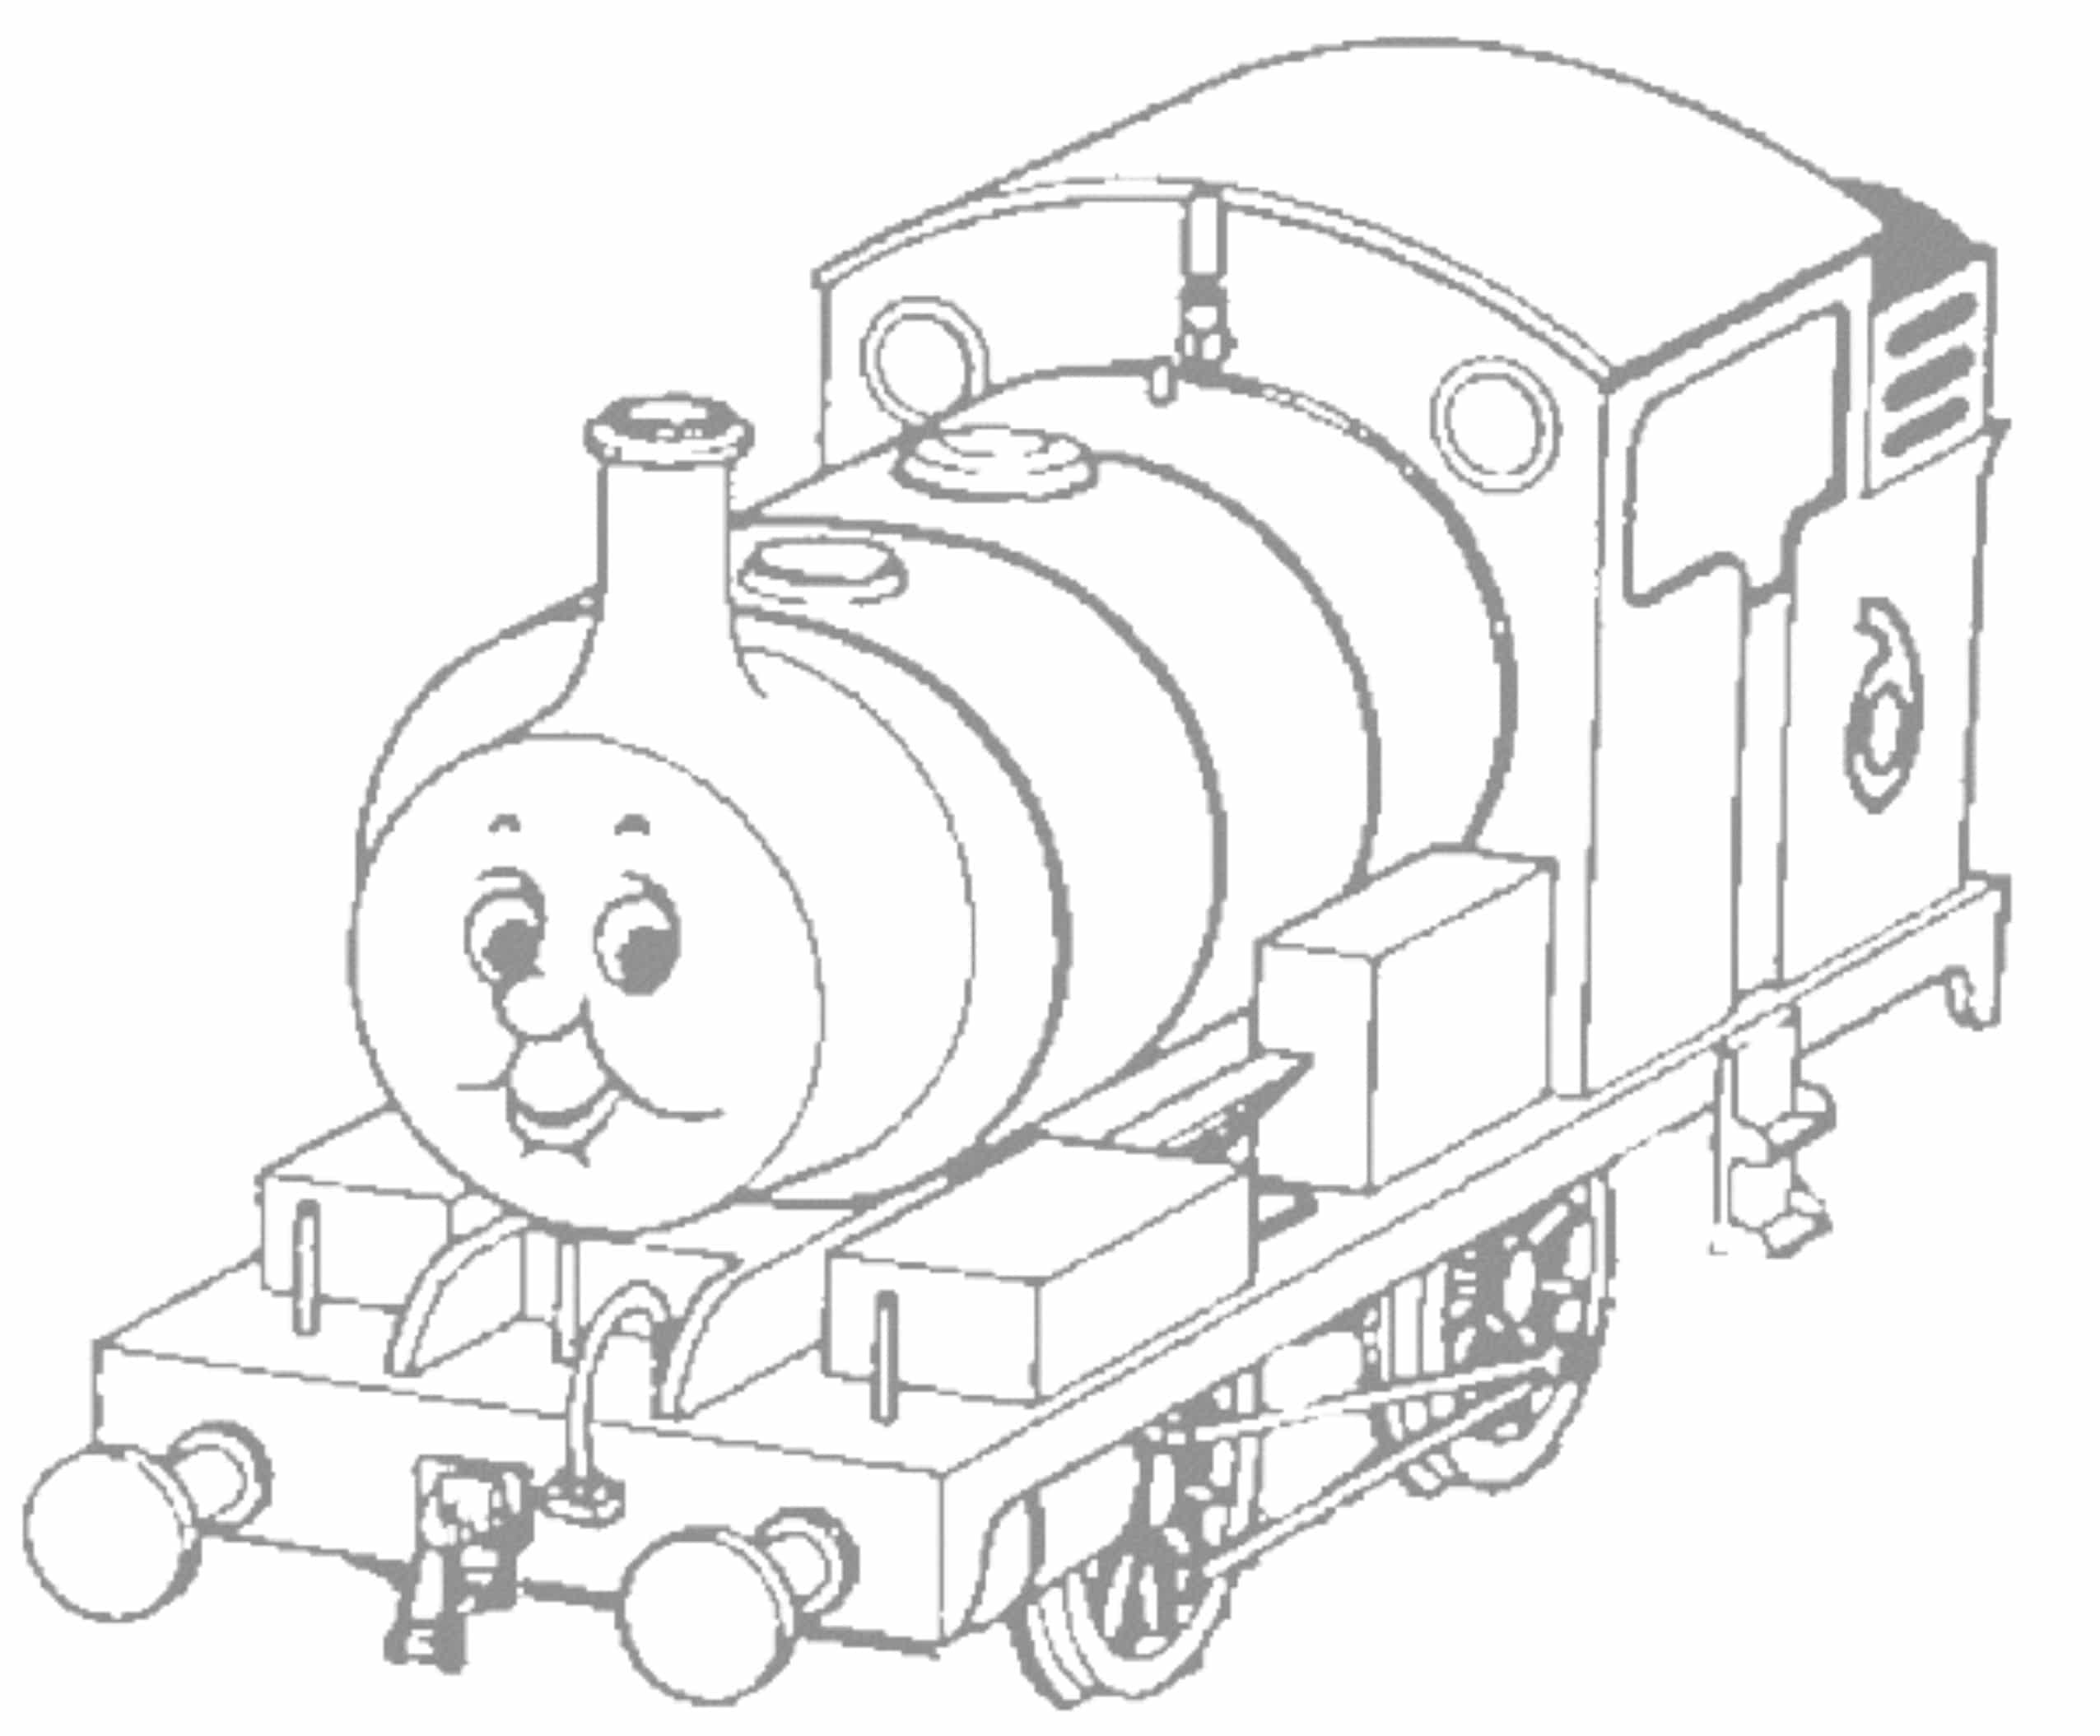 coloring train pages free printable train coloring pages for kids cool2bkids train coloring pages 1 1